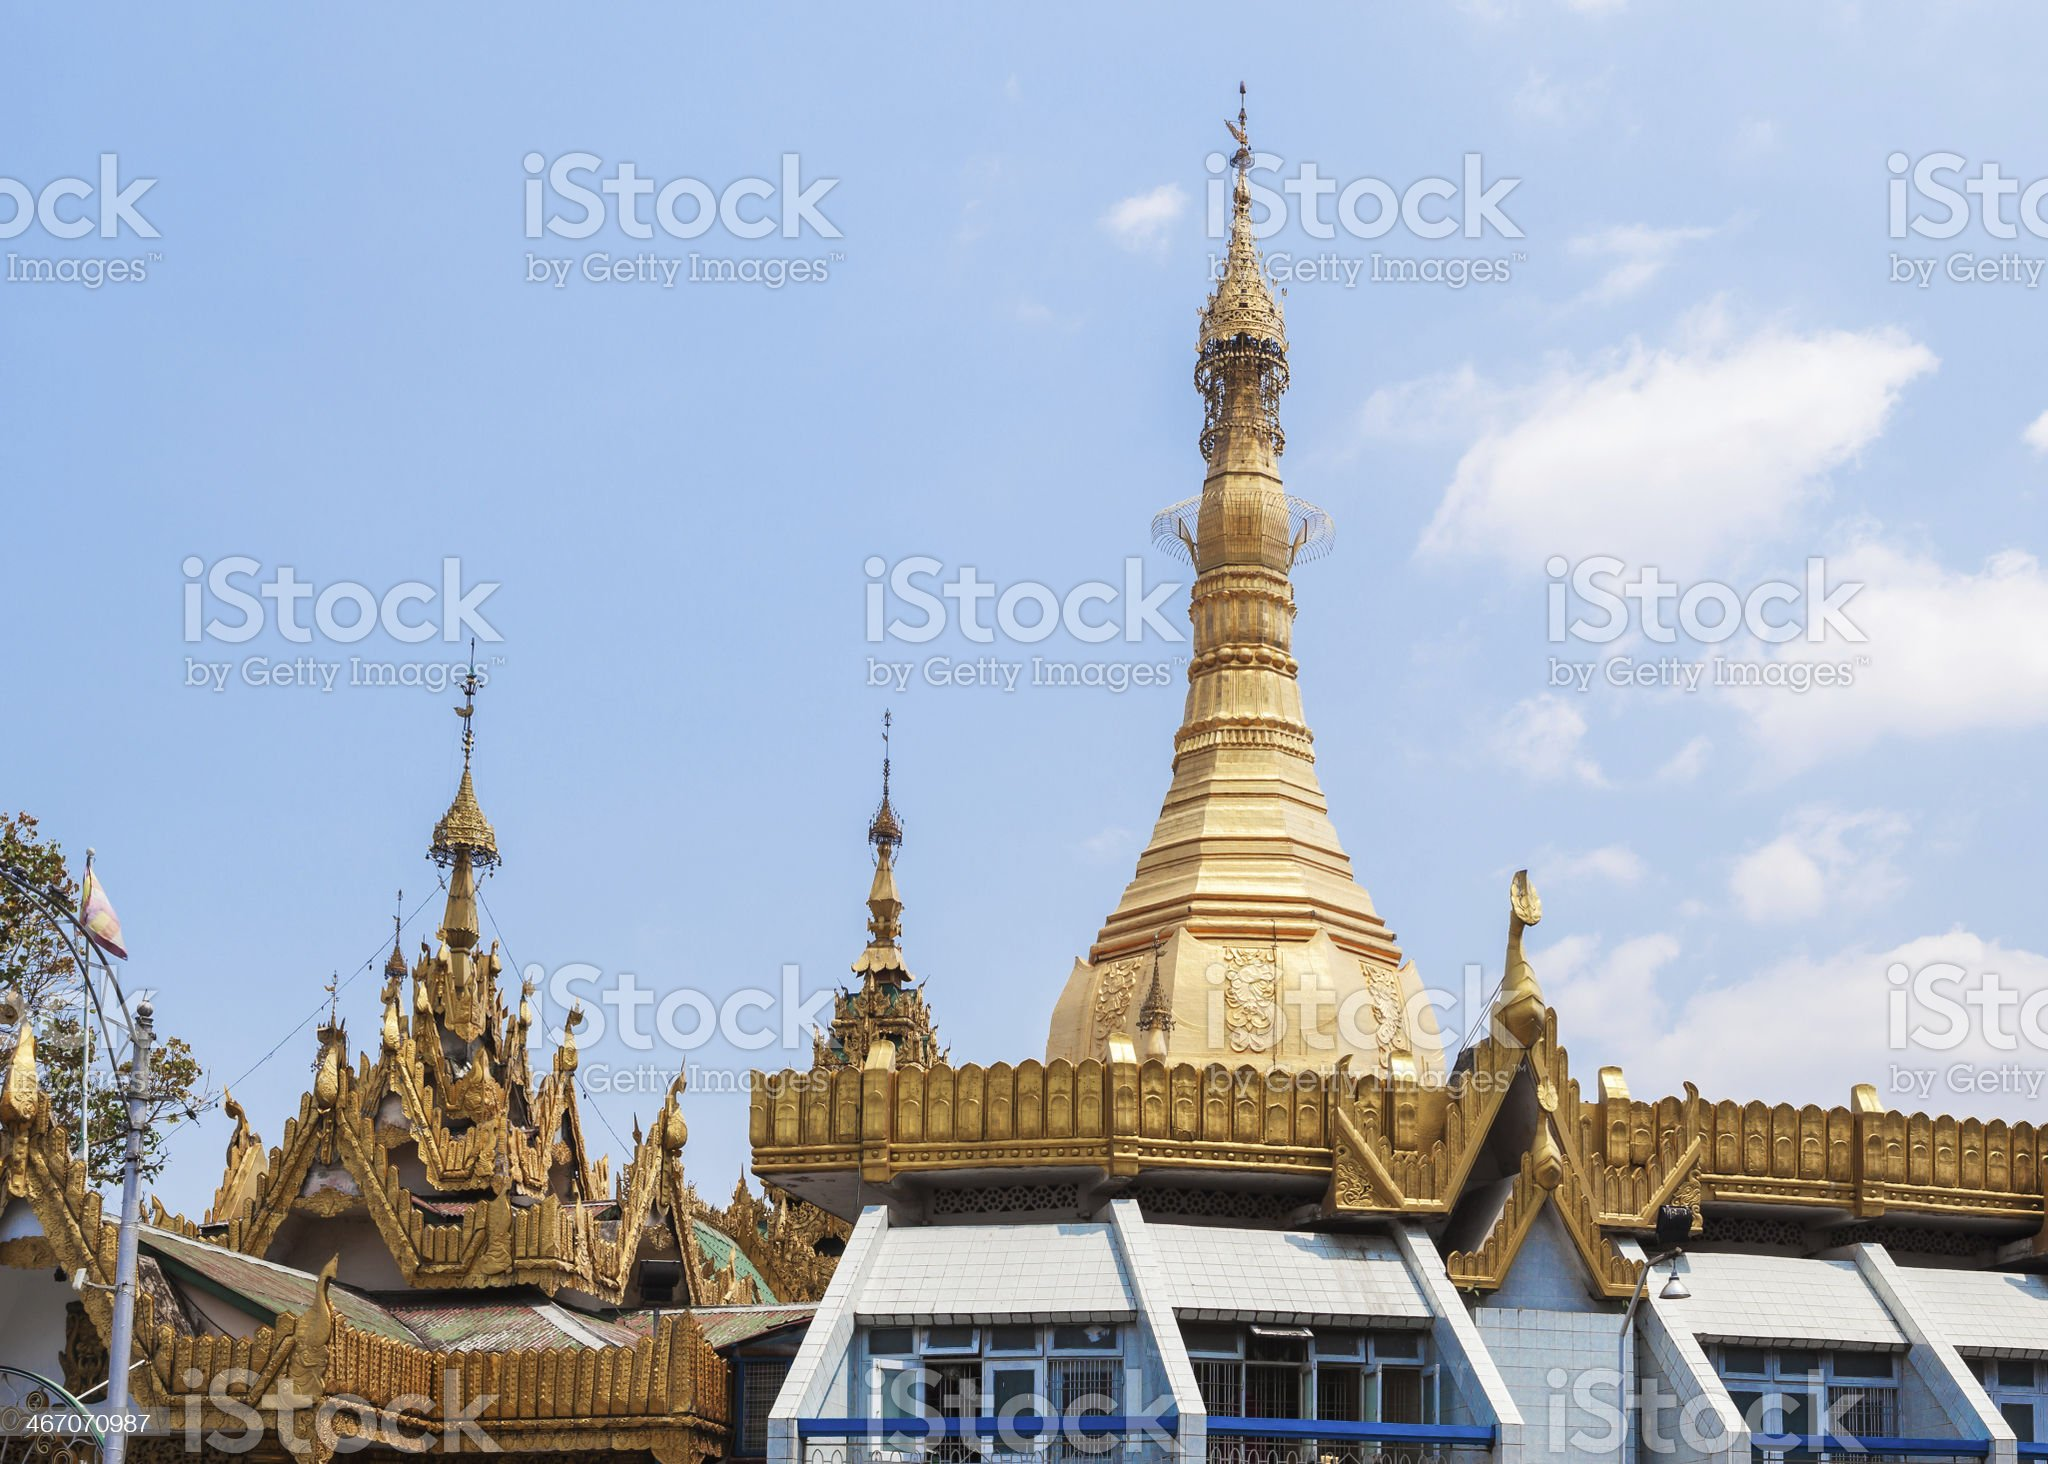 Sule pagoda in Yangon, Burma (Myanmar) royalty-free stock photo